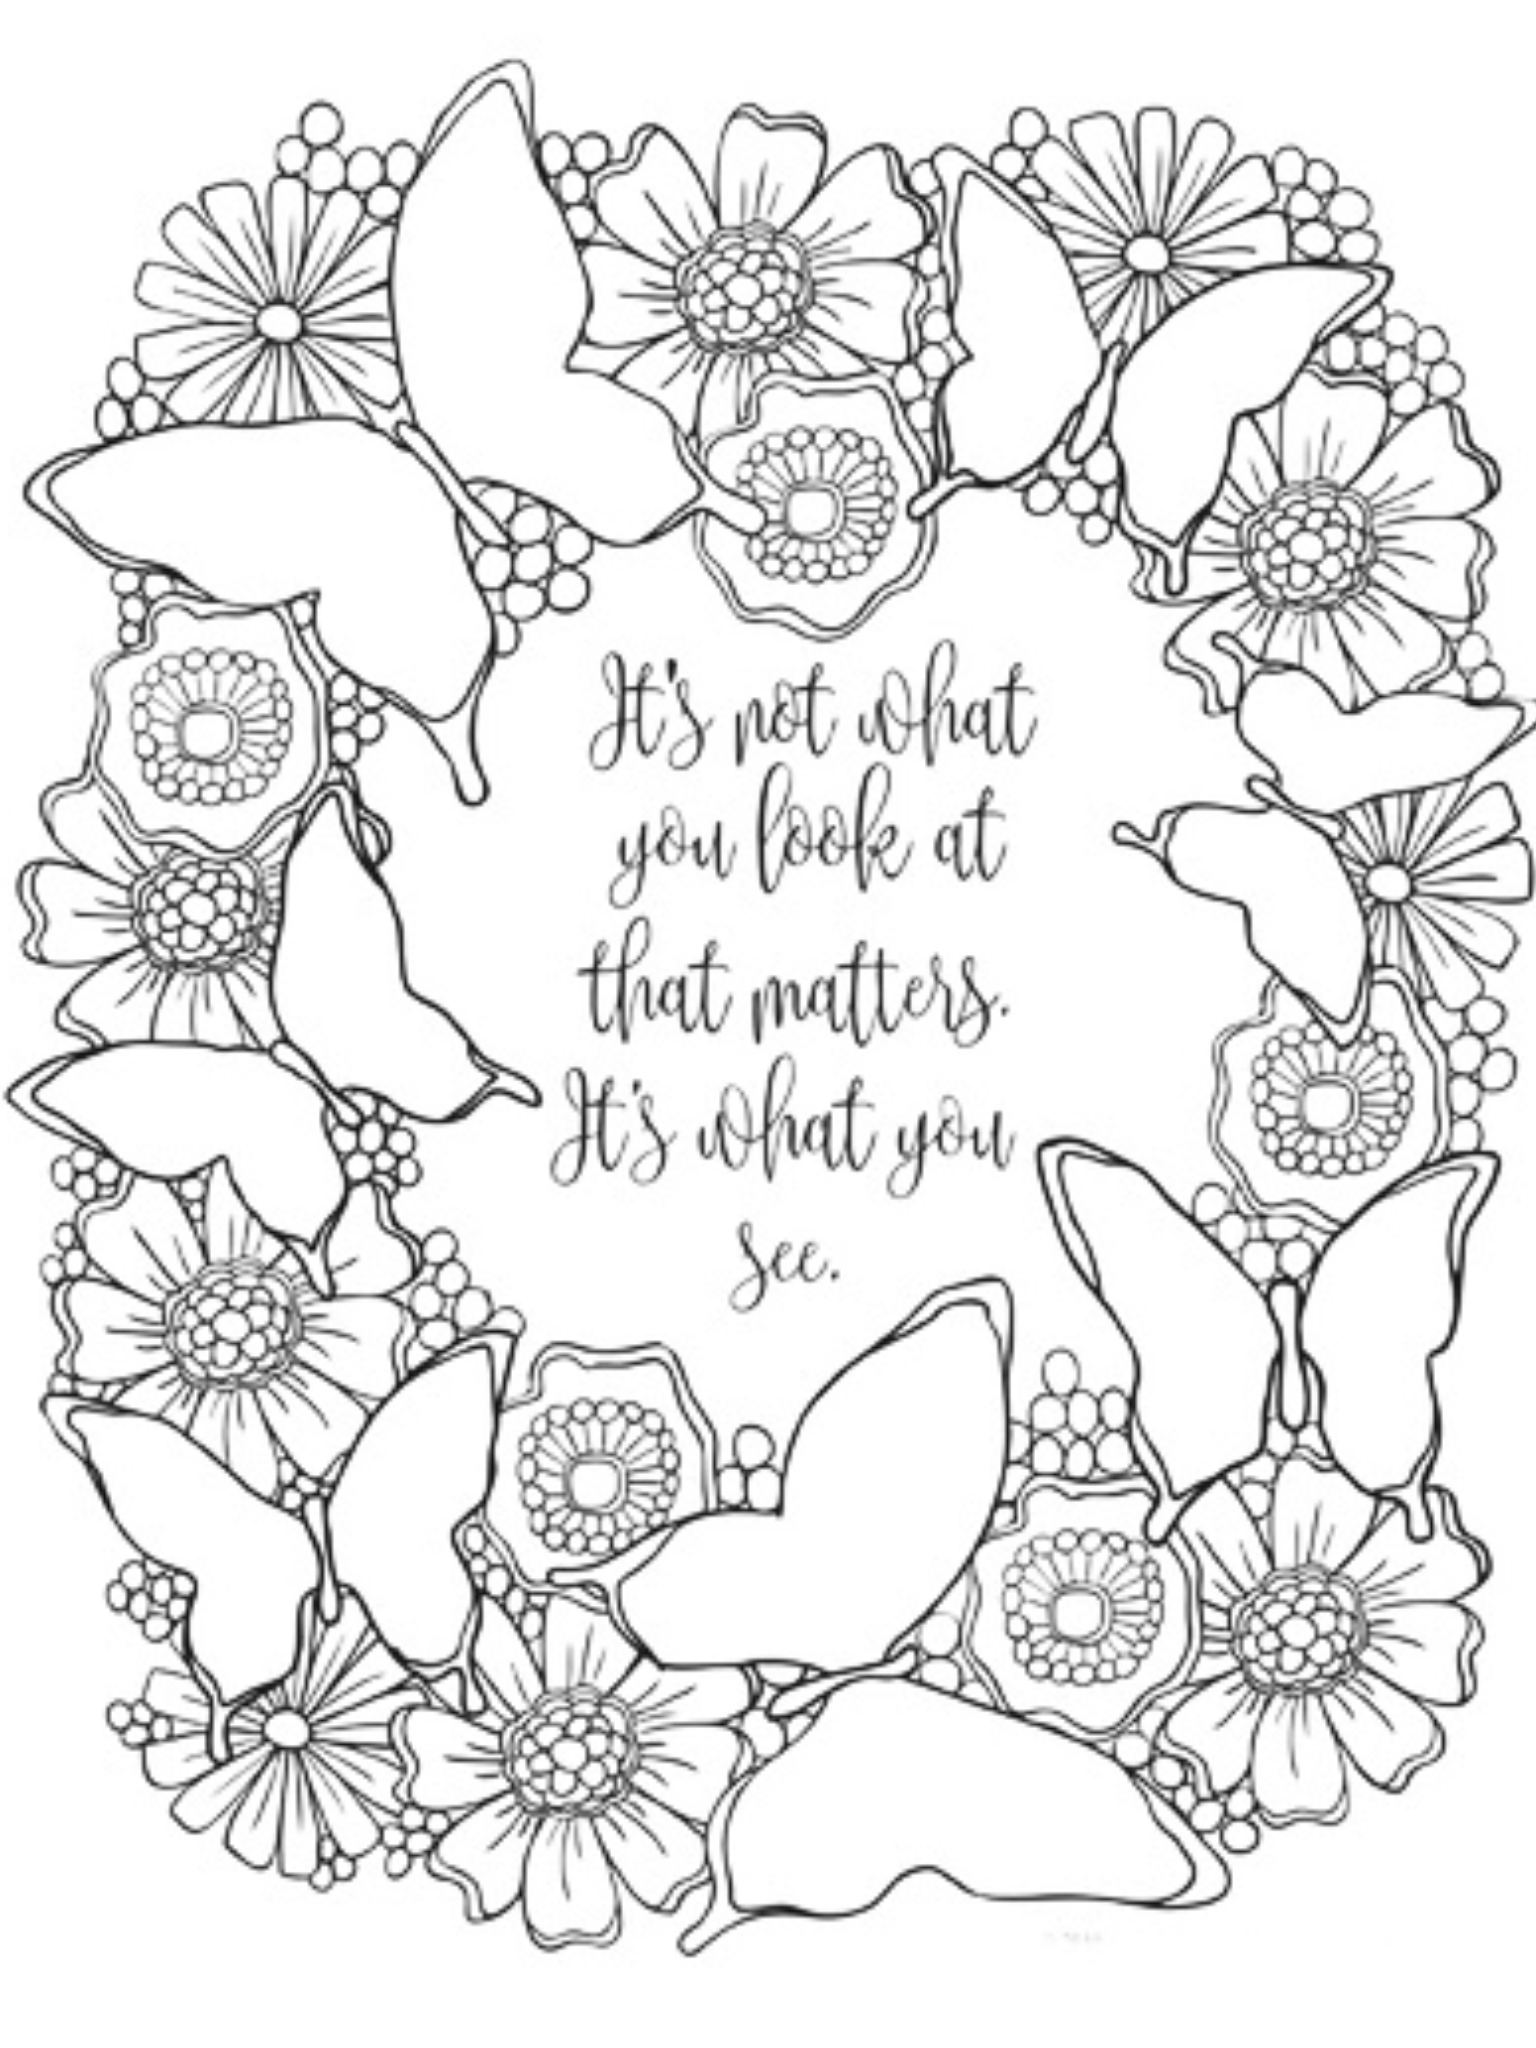 Adult Coloring Pages Image By Tan